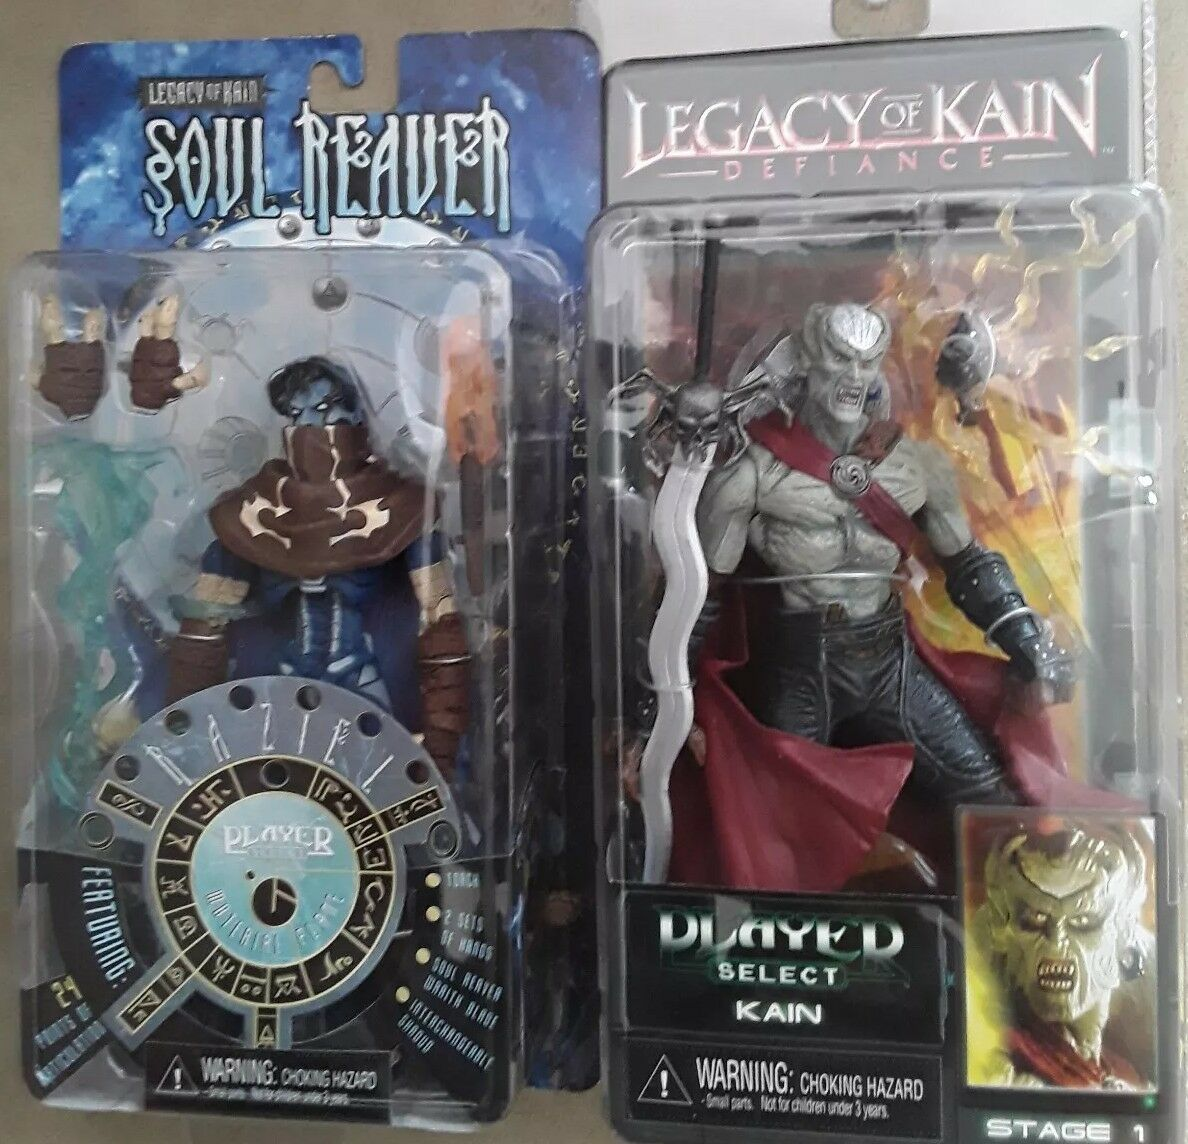 Neca Legacy of Kain SOULREAVER spelaer Select Raziel and Kain